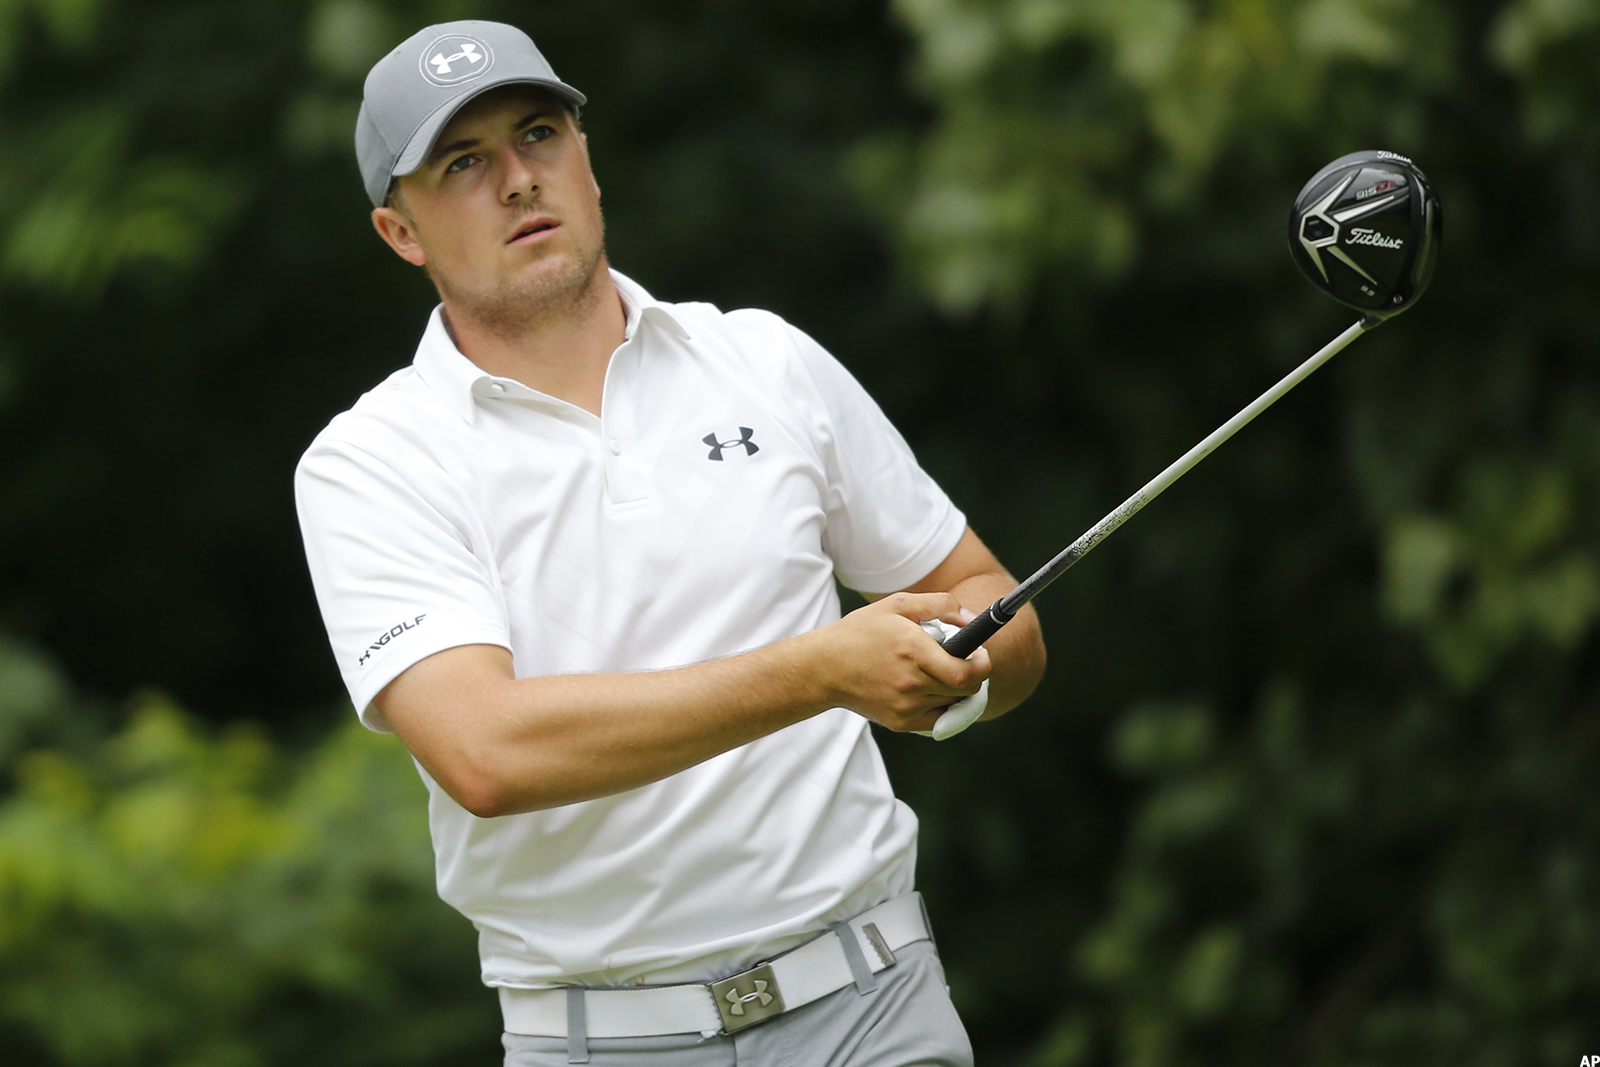 f2378a1a6b88 Under Armour (UA) Hits a Hole-In-One With Its Jordan Spieth Sponsorship -  TheStreet